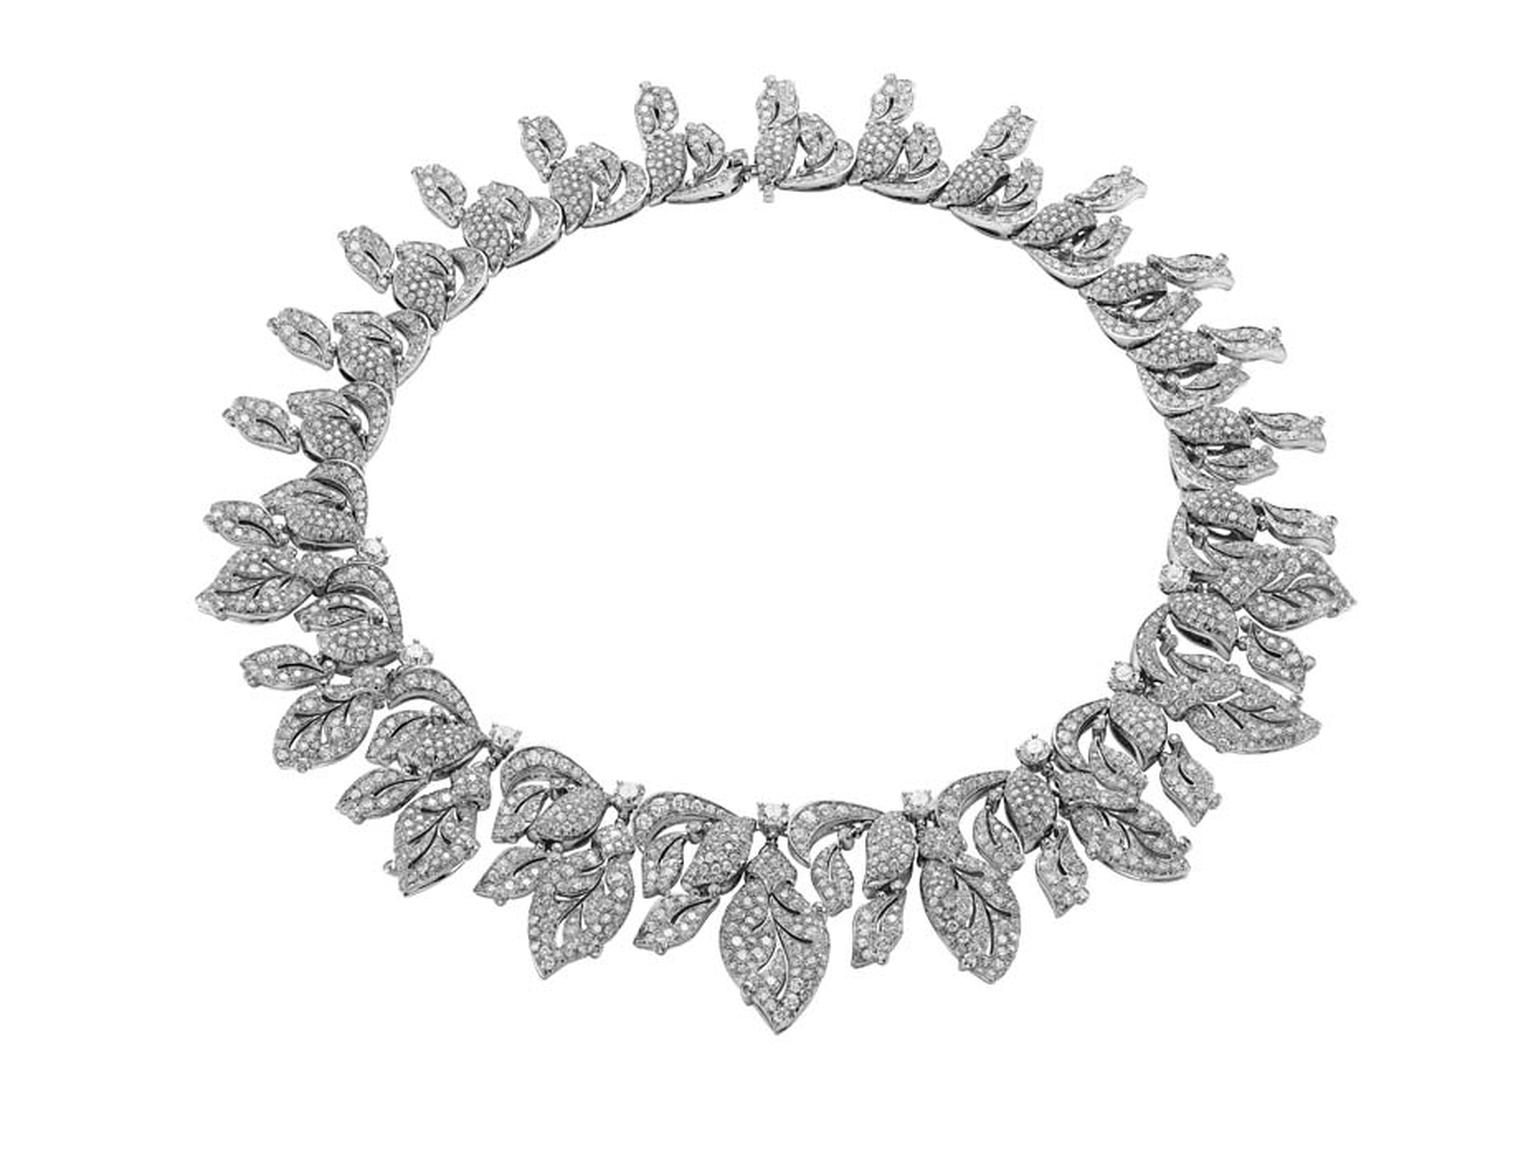 Bulgari 'Four Seasons Winter' necklace in platinum with brilliant-cut diamonds and pavé-set diamonds